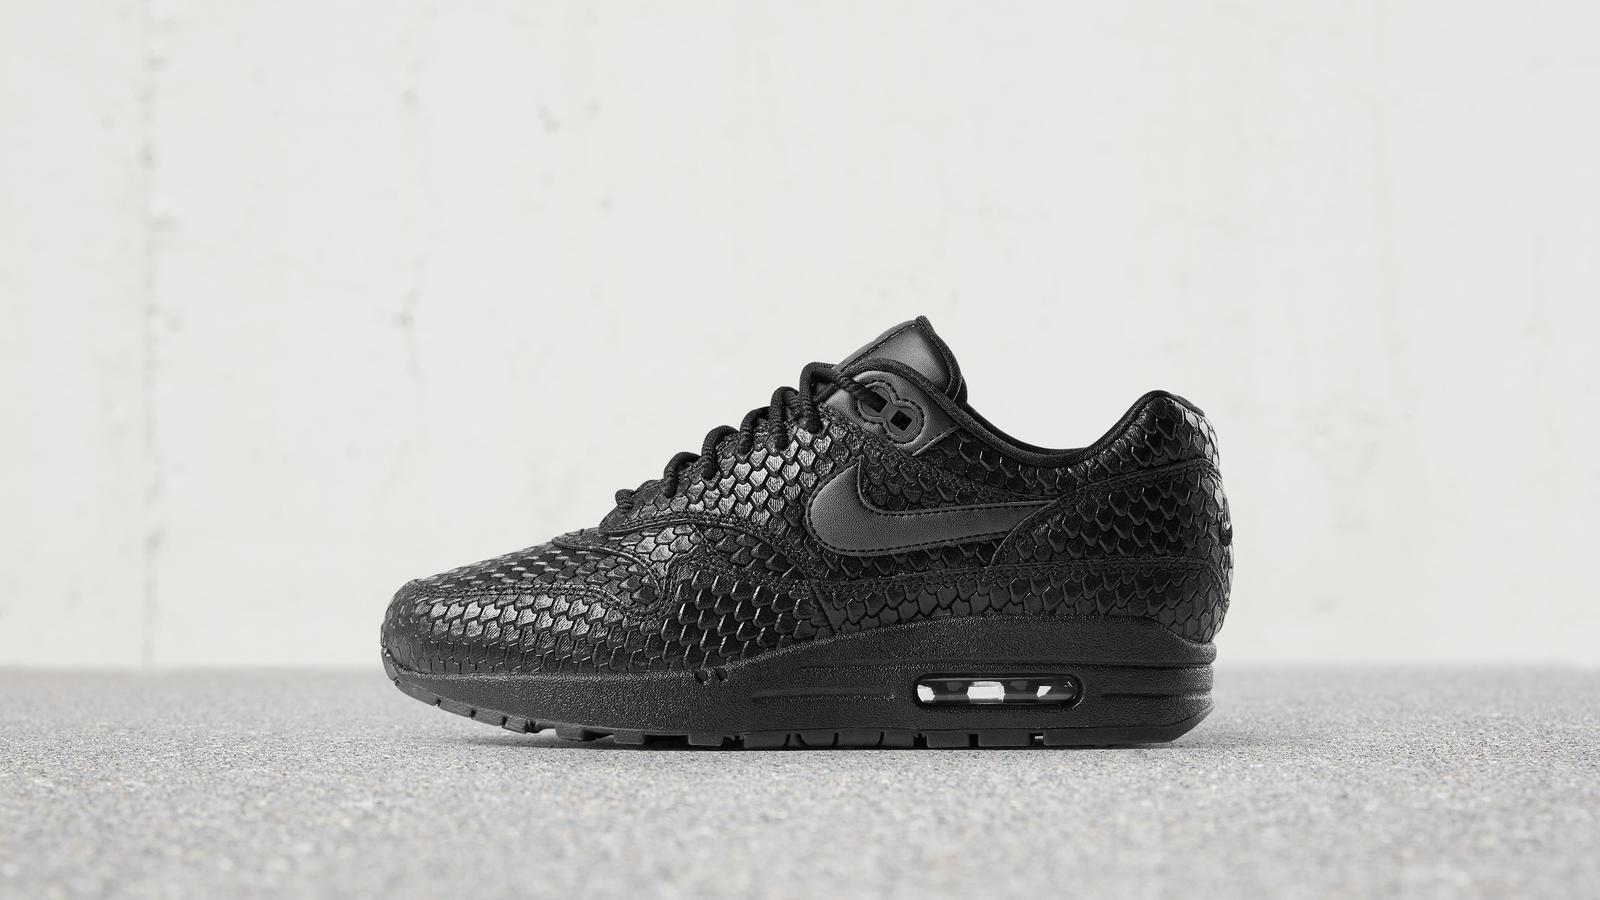 170607 footwear am1 blk 0075 hd 1600